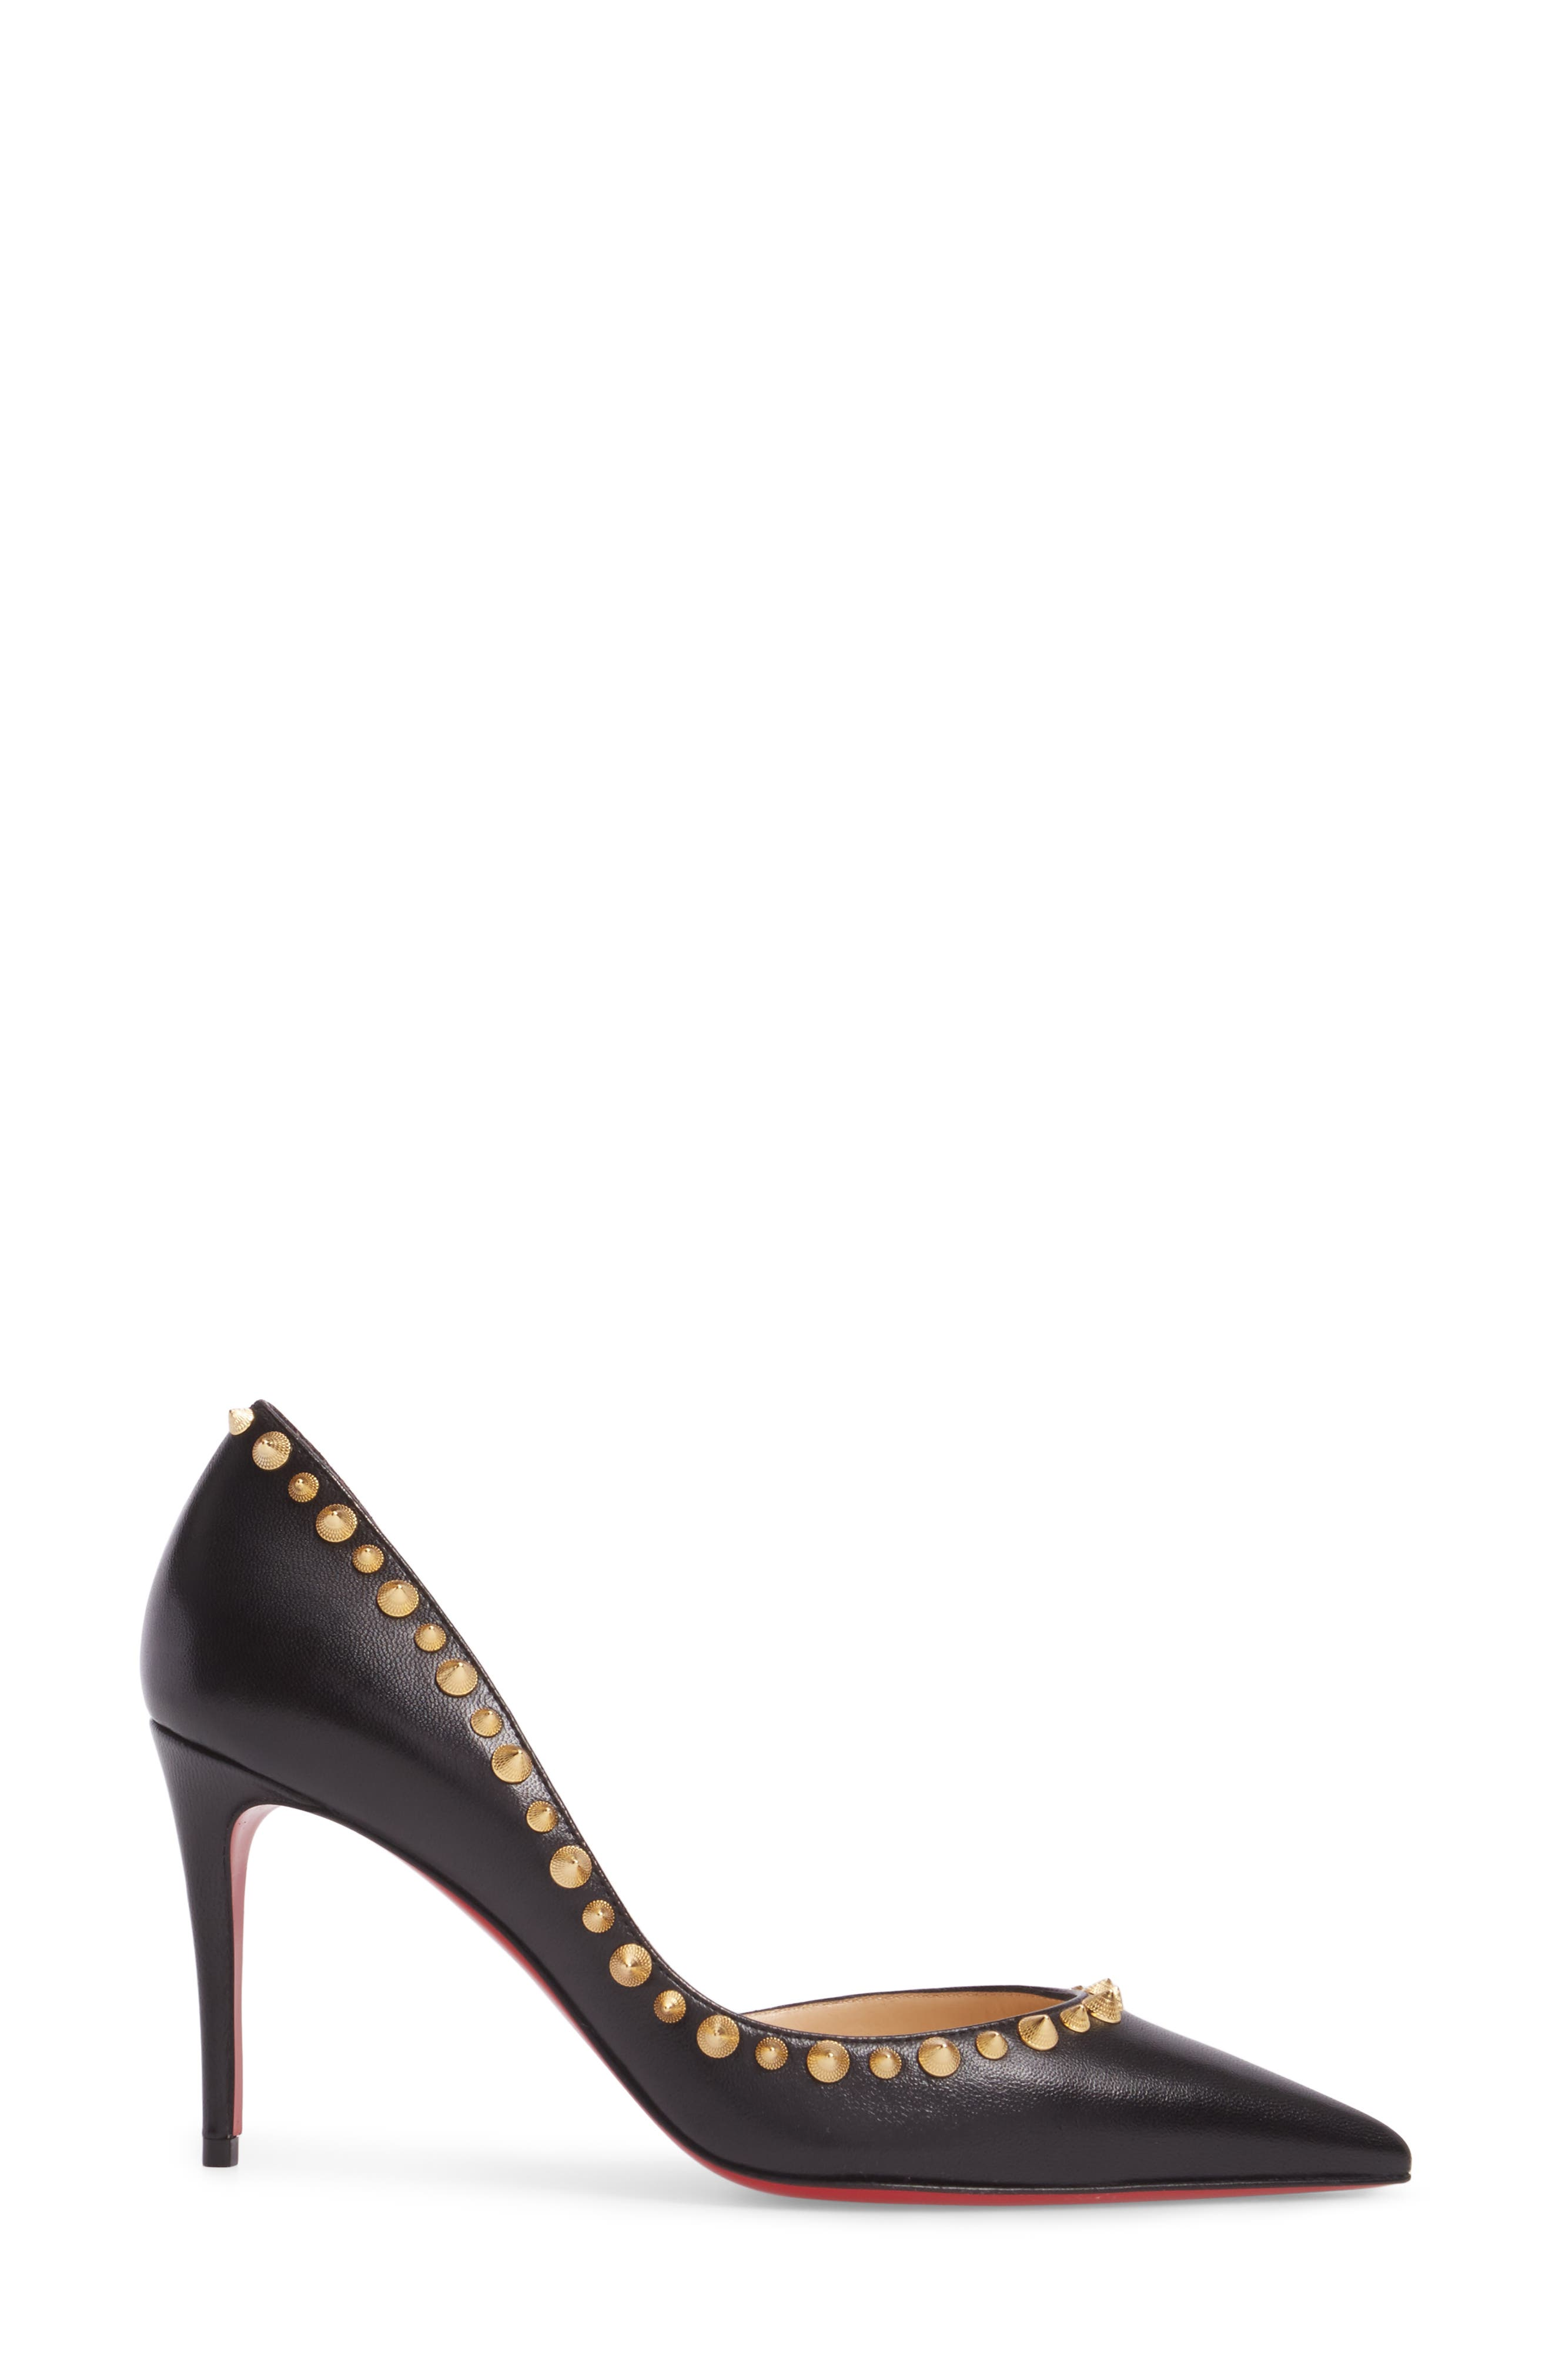 Irishell Studded Half d'Orsay Pump,                             Alternate thumbnail 3, color,                             Black/ Gold